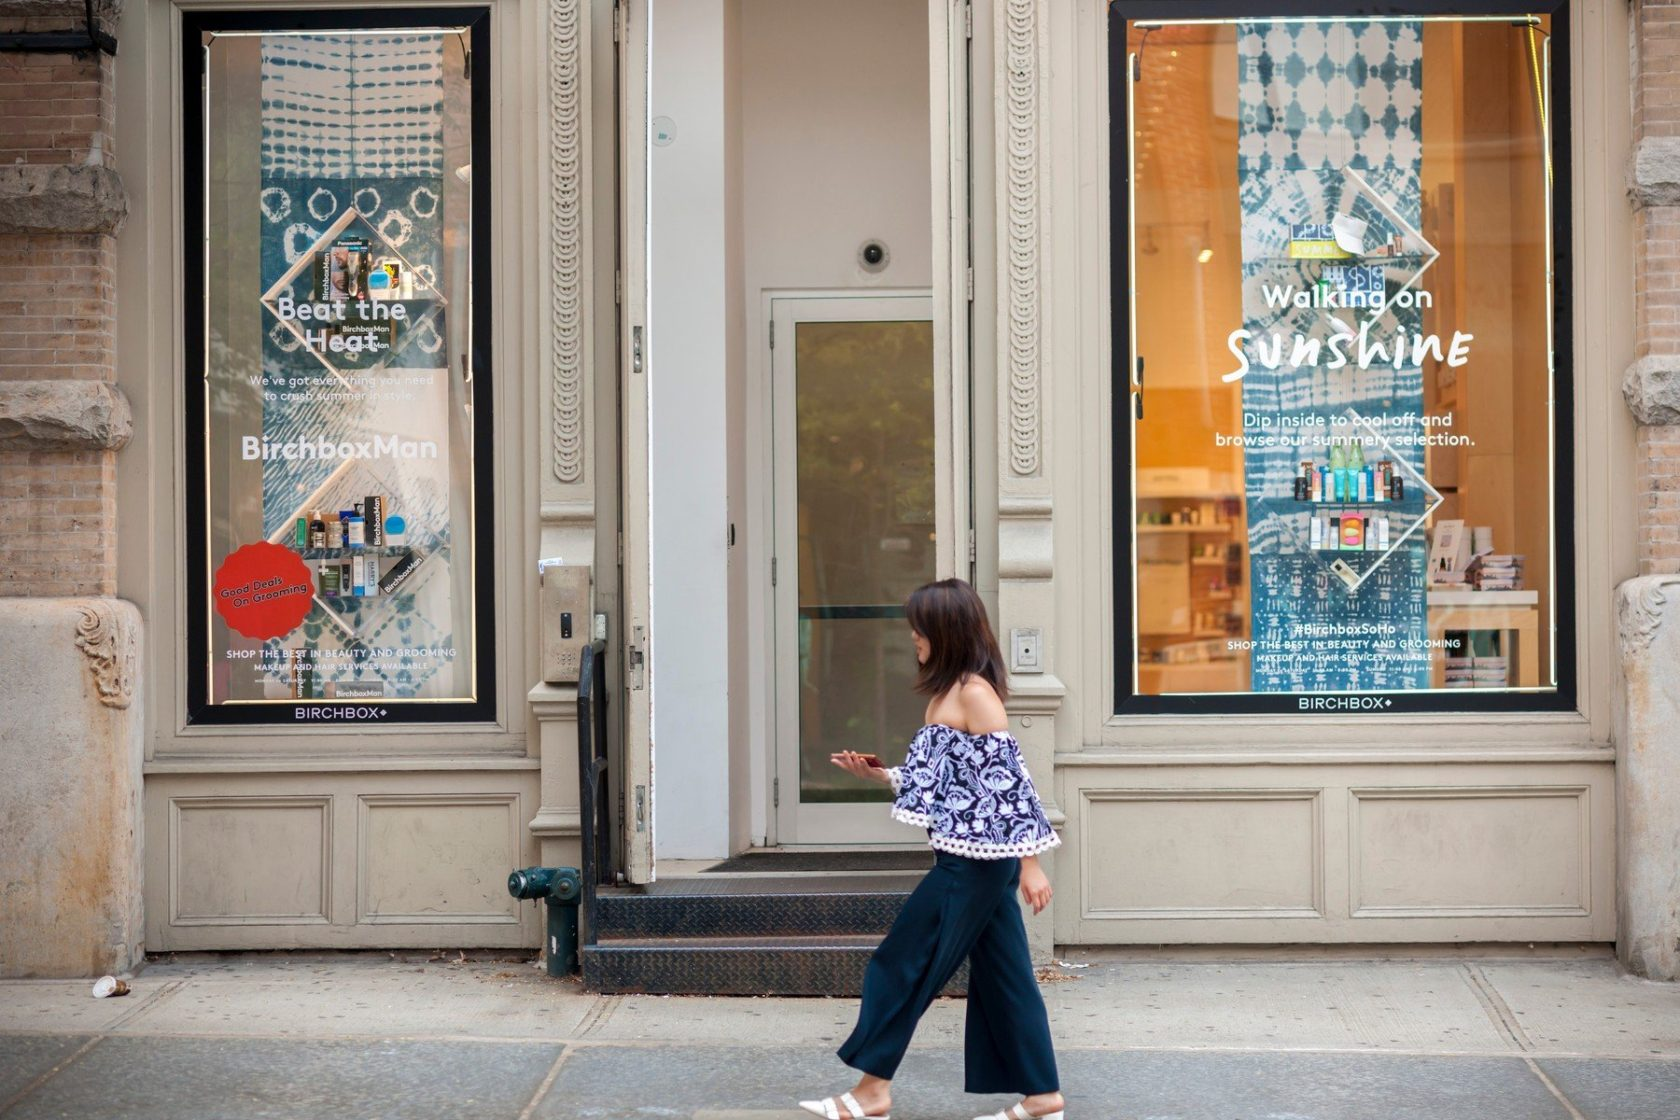 A brick-and-mortar store of the cosmetics subscription service Birchbox in the Soho neighborhood of New York on Thursday, August 10, 2017. Walmart is reported to have had talks about acquiring the beauty seller., Image: 344731654, License: Rights-managed, Restrictions: WORLD RIGHTS excluding USA- Fee Payable Upon Reproduction - For queries contact Avalon.red - sales@avalon.red London: +44 (0) 20 7421 6000 Los Angeles: +1 (310) 822 0419 Berlin: +49 (0) 30 76 212 251, Model Release: no, Credit line: Profimedia, UPPA News